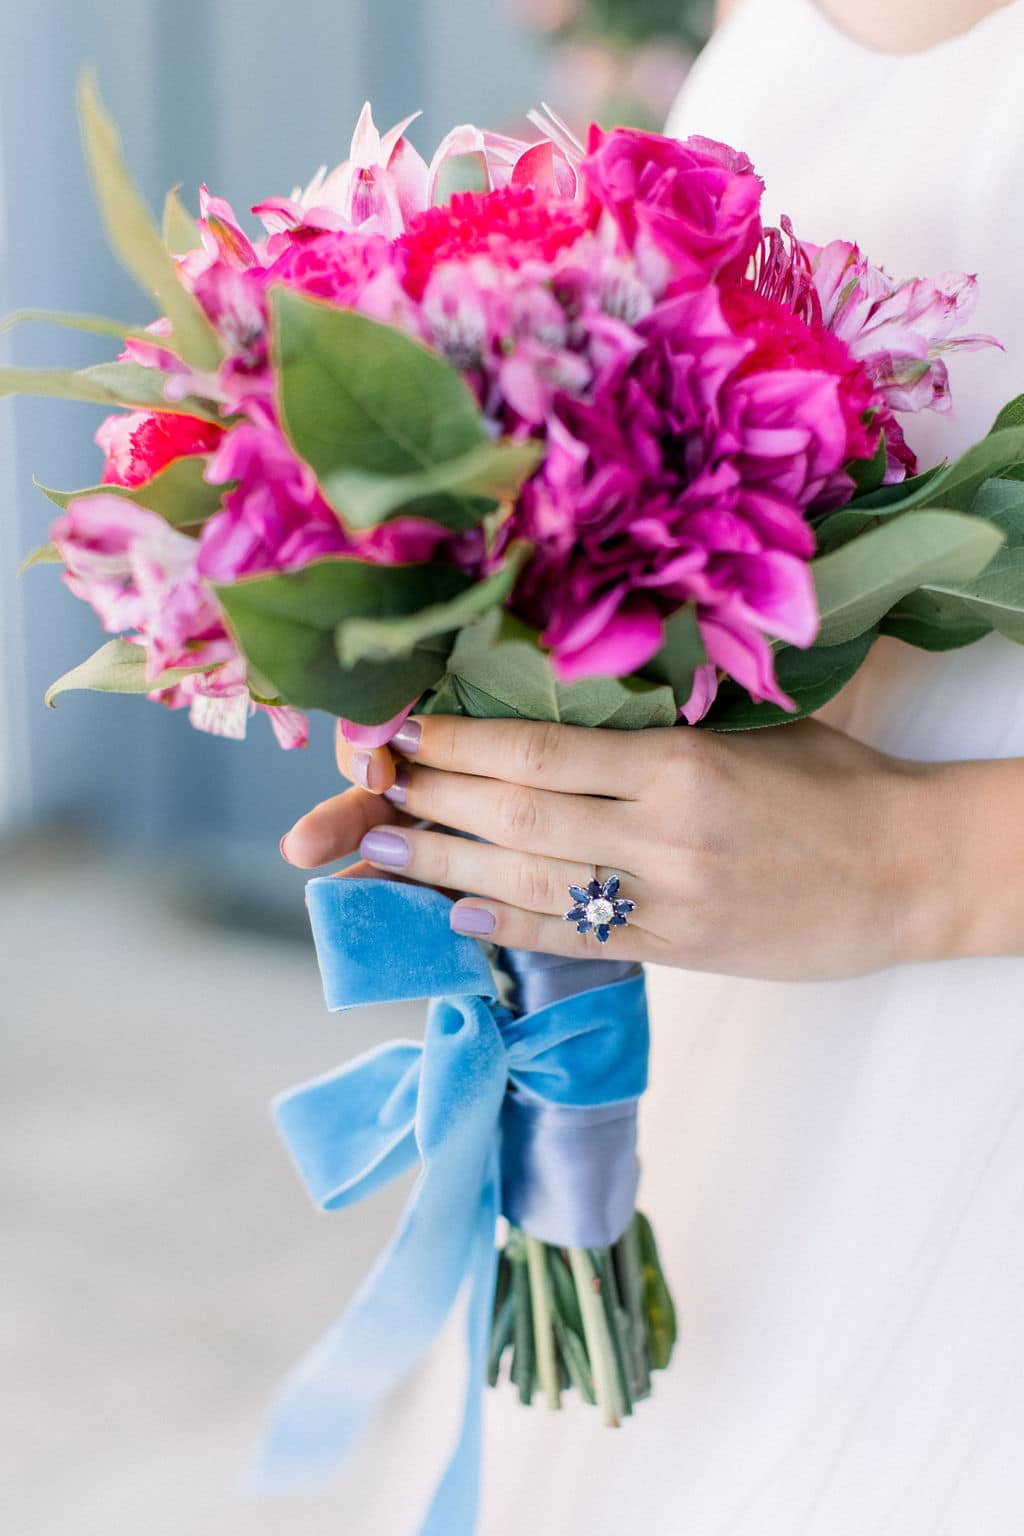 blue flower diamond ring holding pink and purple roses and flowers